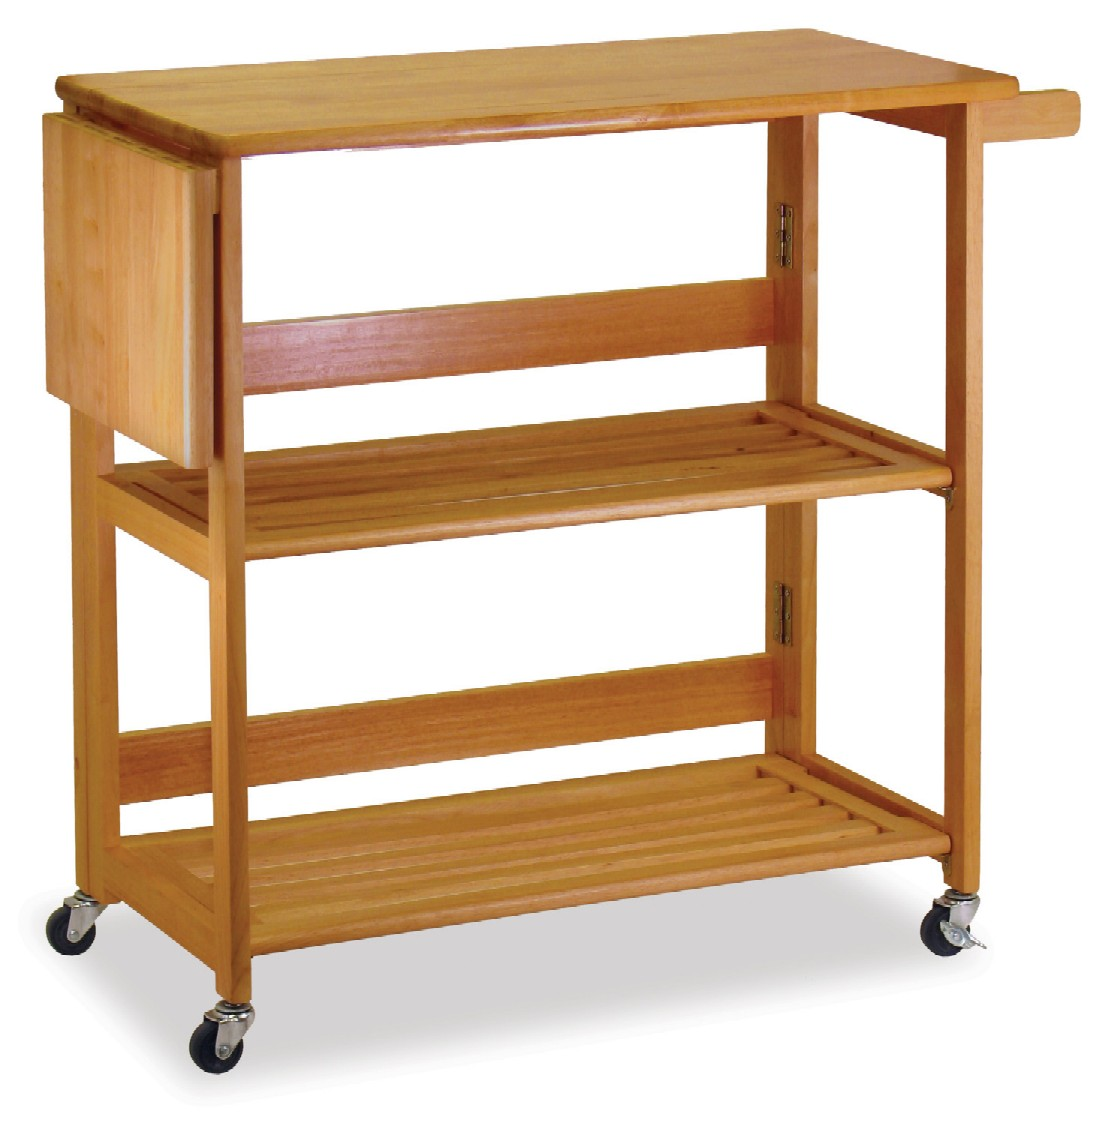 Winsome 34137 Light Oak Beechwood FOLDABLE KITCHEN CART WITH KNIFE BLOCK